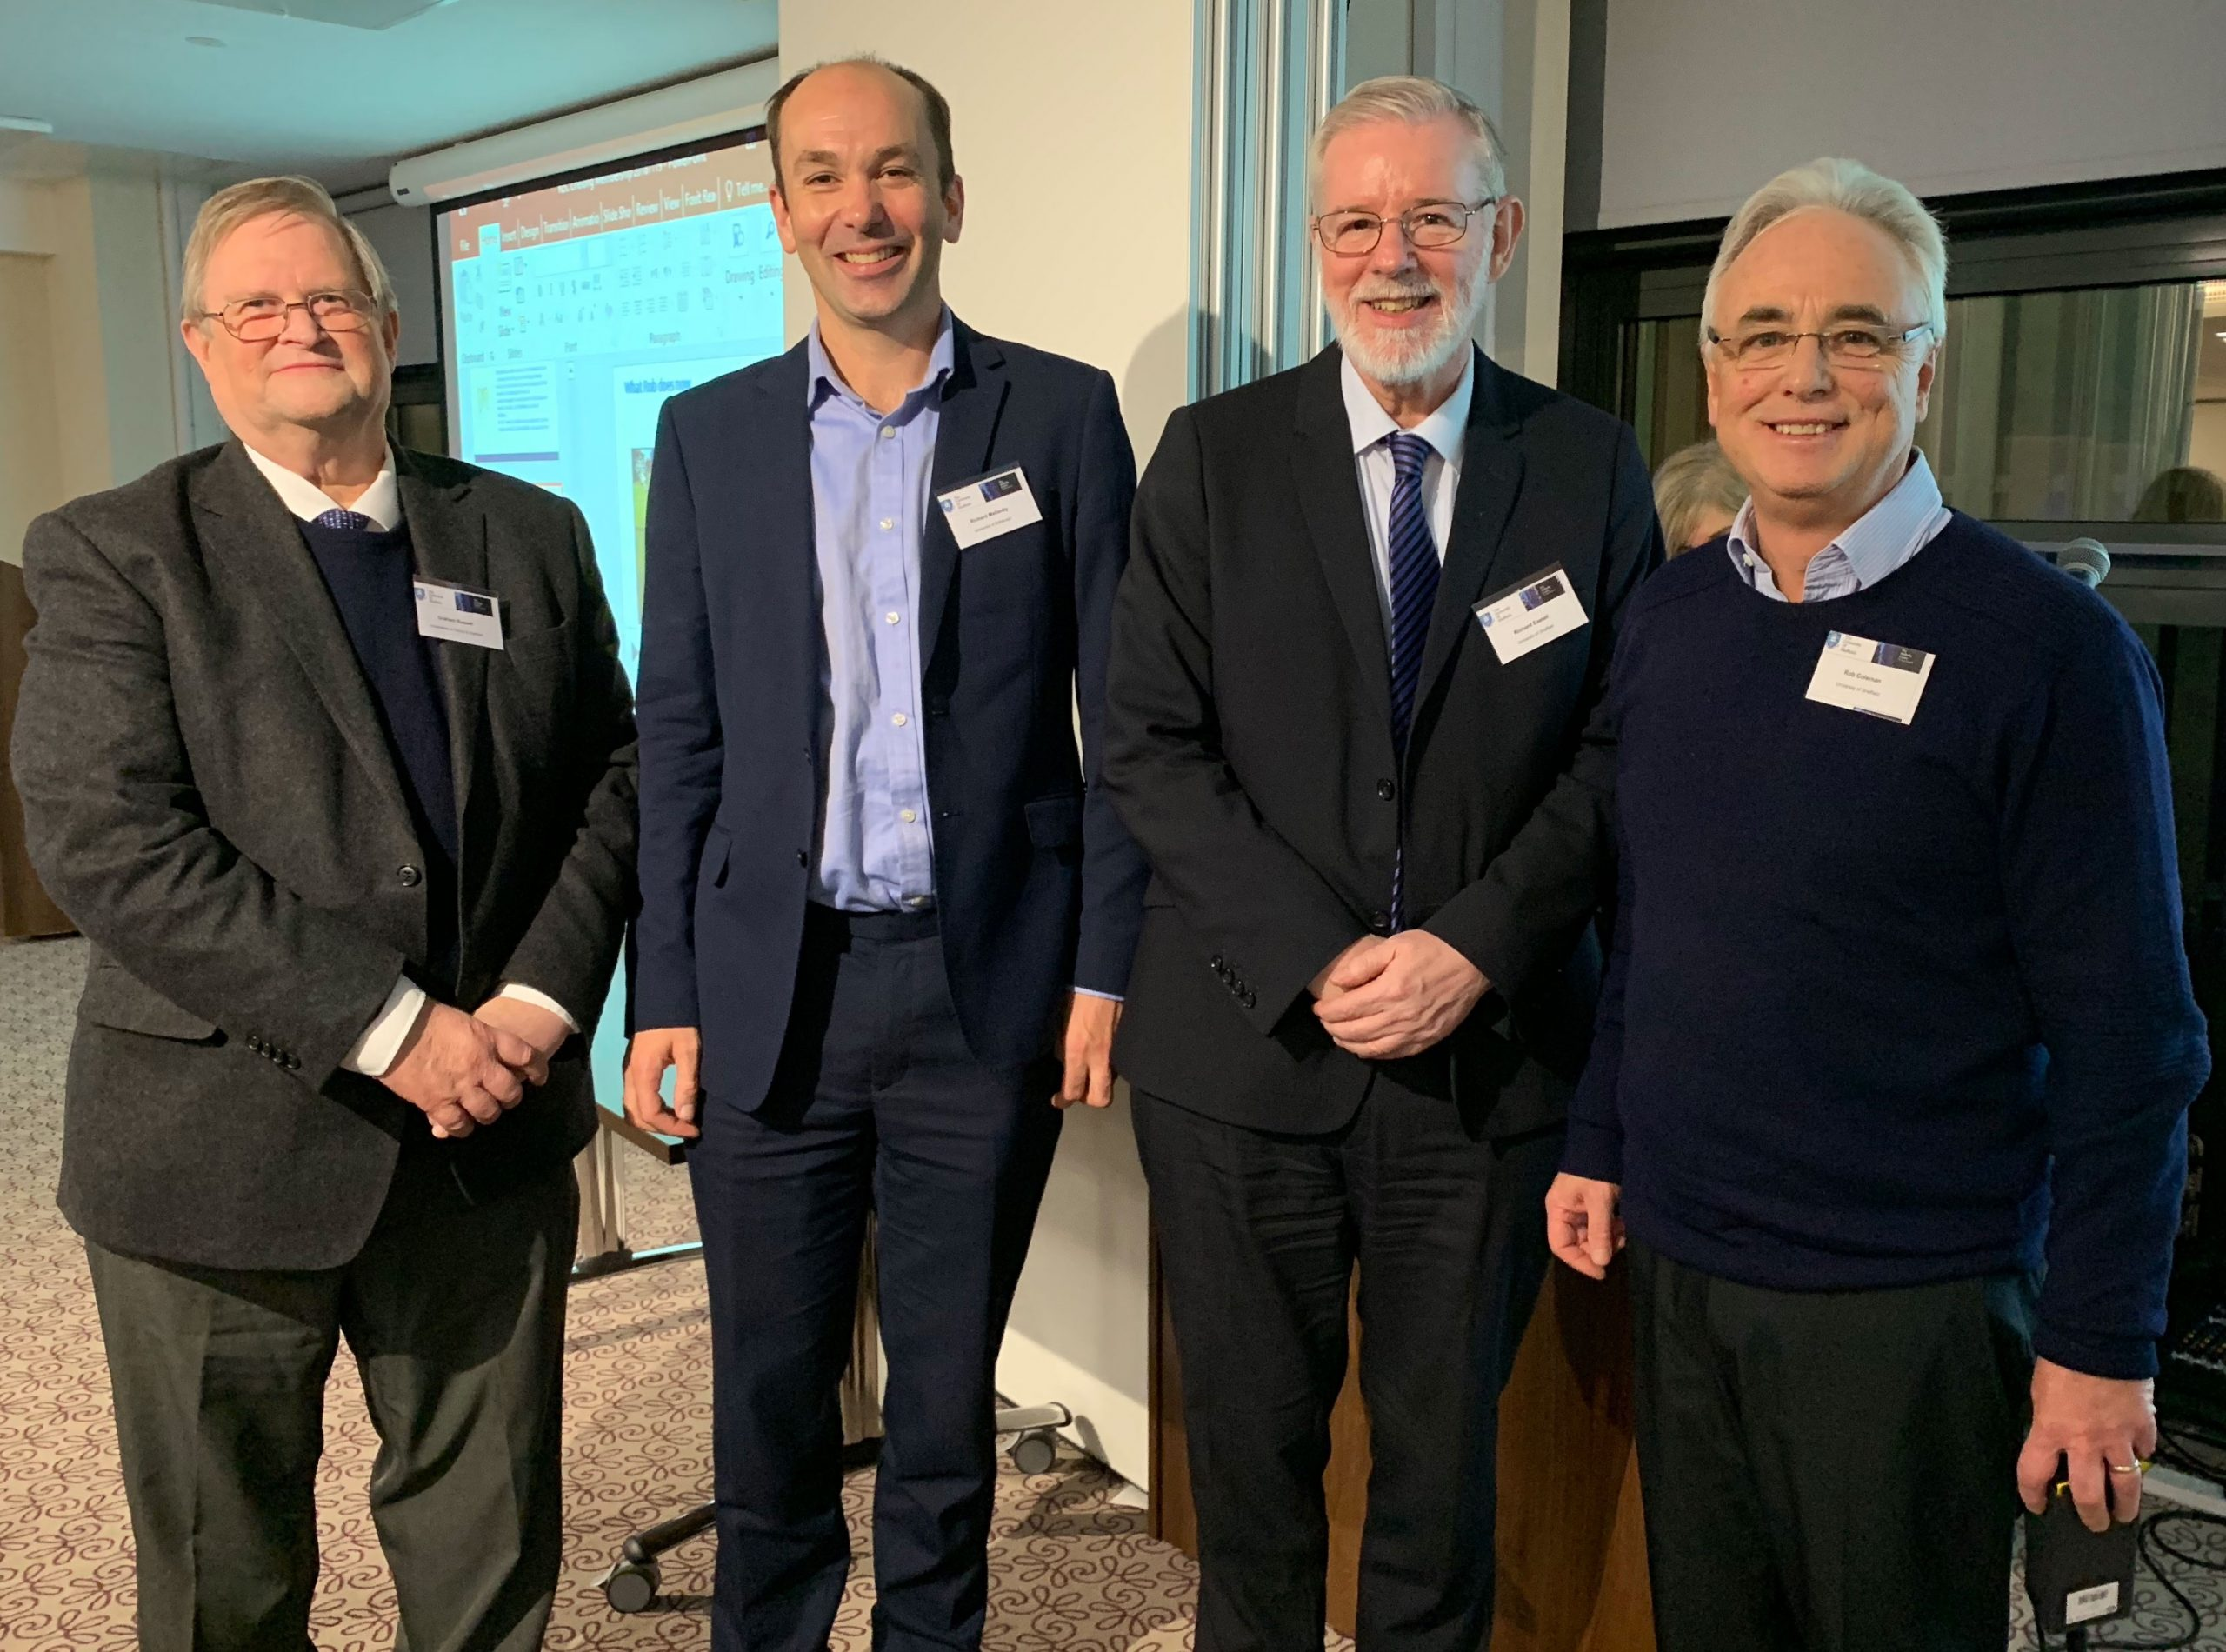 VitDAL research presented at Mellanby Centre, Sheffield